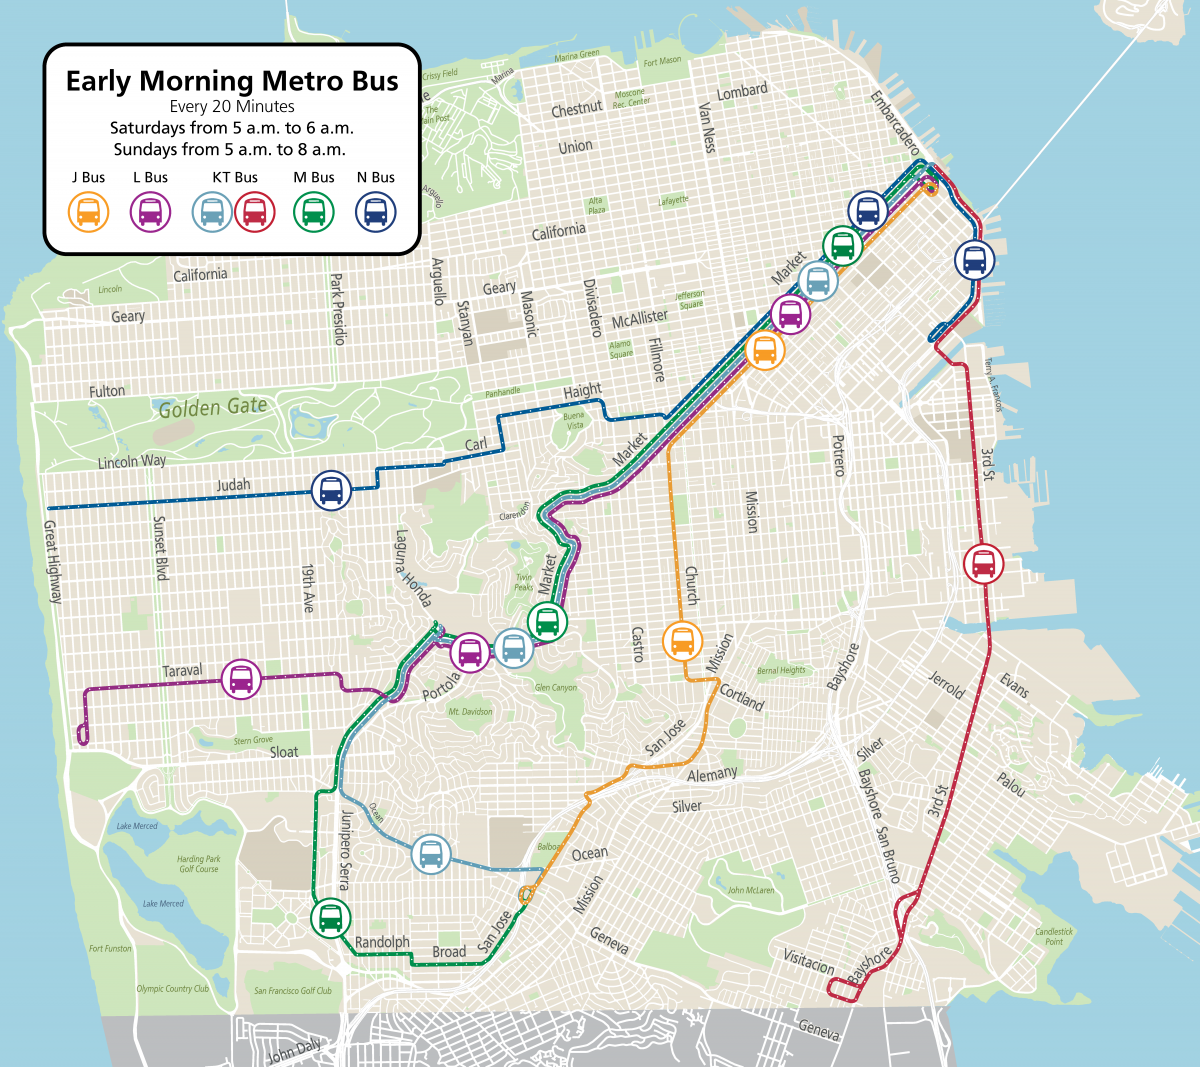 Map of Weekend Early Morning Metro Bus Service (Saturday 5 to 6 a.m.; Sundays 5 to 8 a.m.)